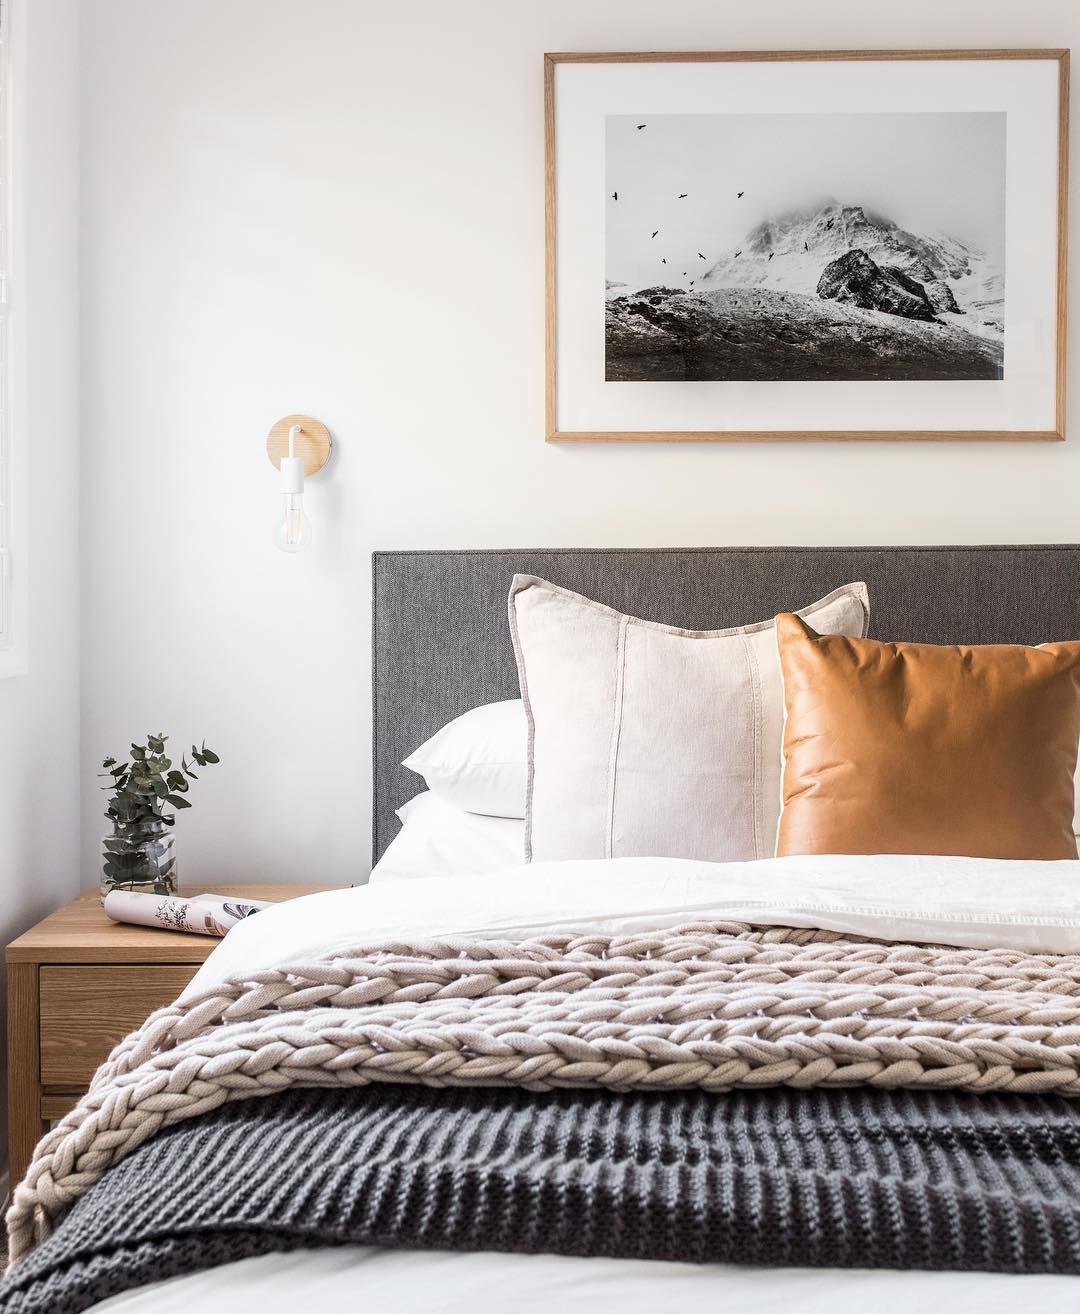 Design My Own Bedroom: Boutique Accomodation Packages! Please Get In Touch If You